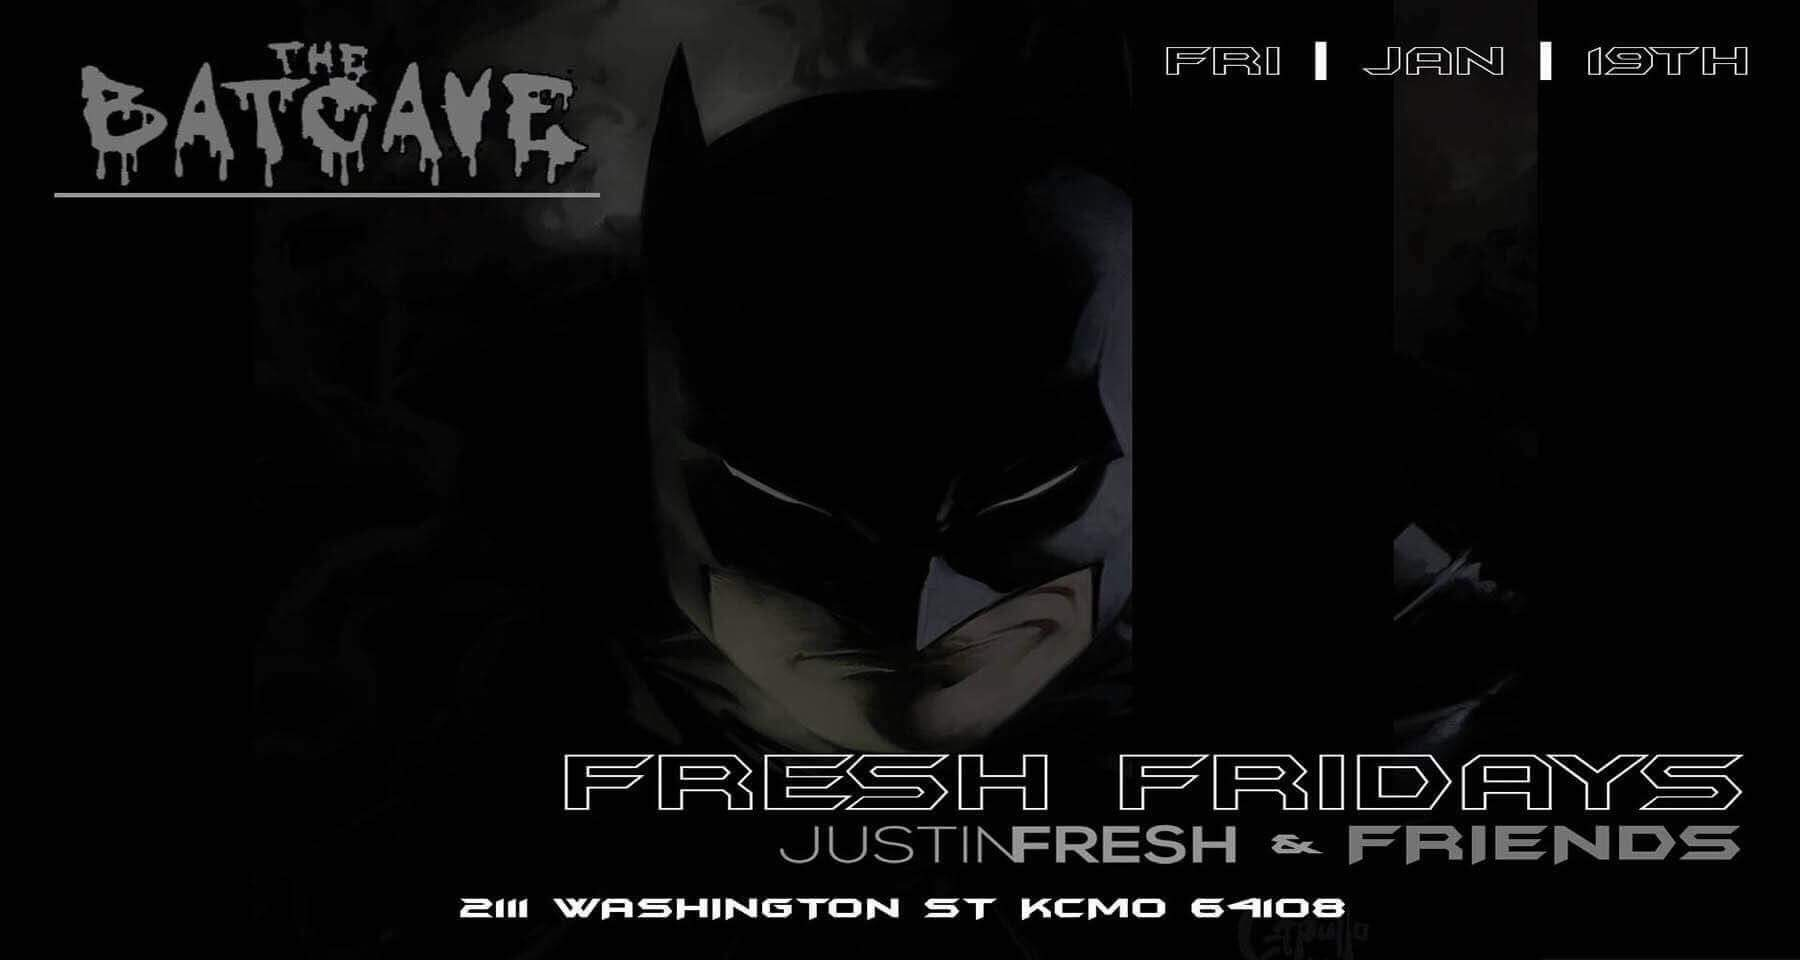 the BatCave @Rhythm & Booze Fresh Fridays DJ Justin Fresh